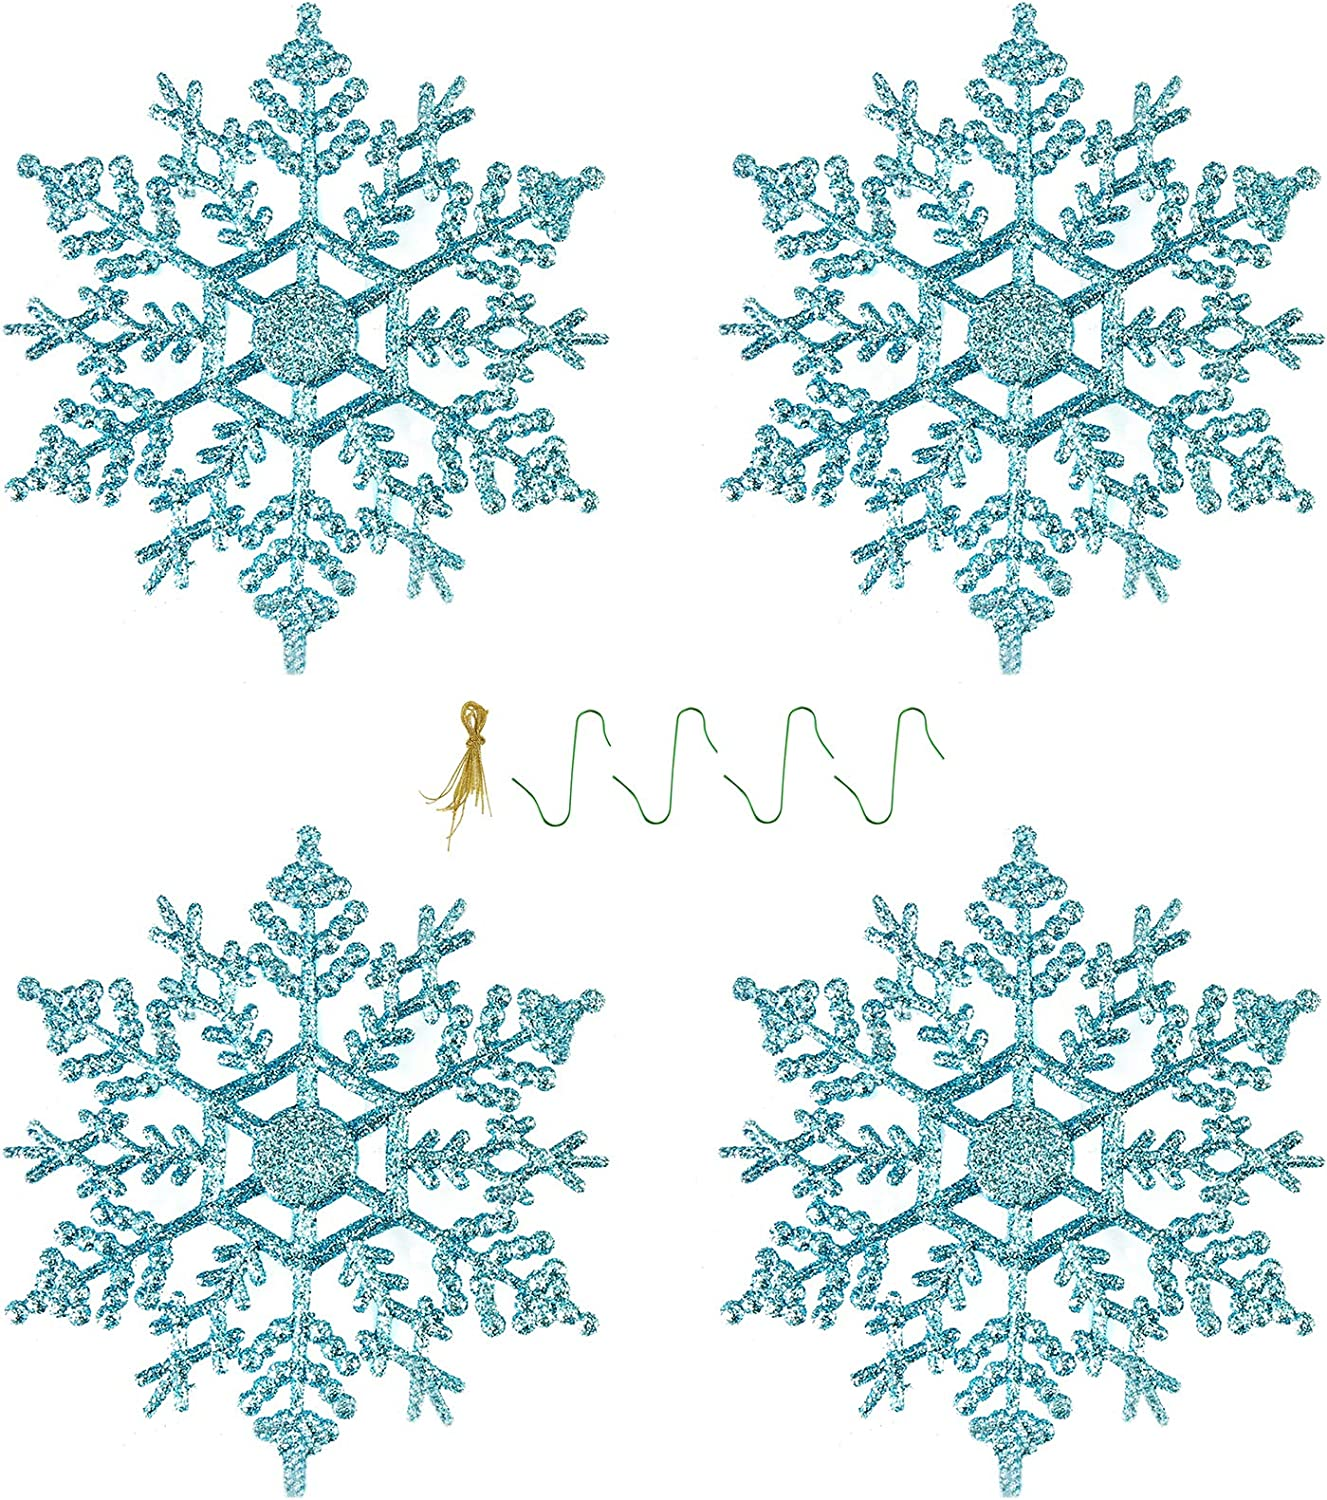 Plastic Glitter Snowflakes Ornaments for Christmas Tree New Year Party Decorations, 4 inches, 24 Pieces (Blue)